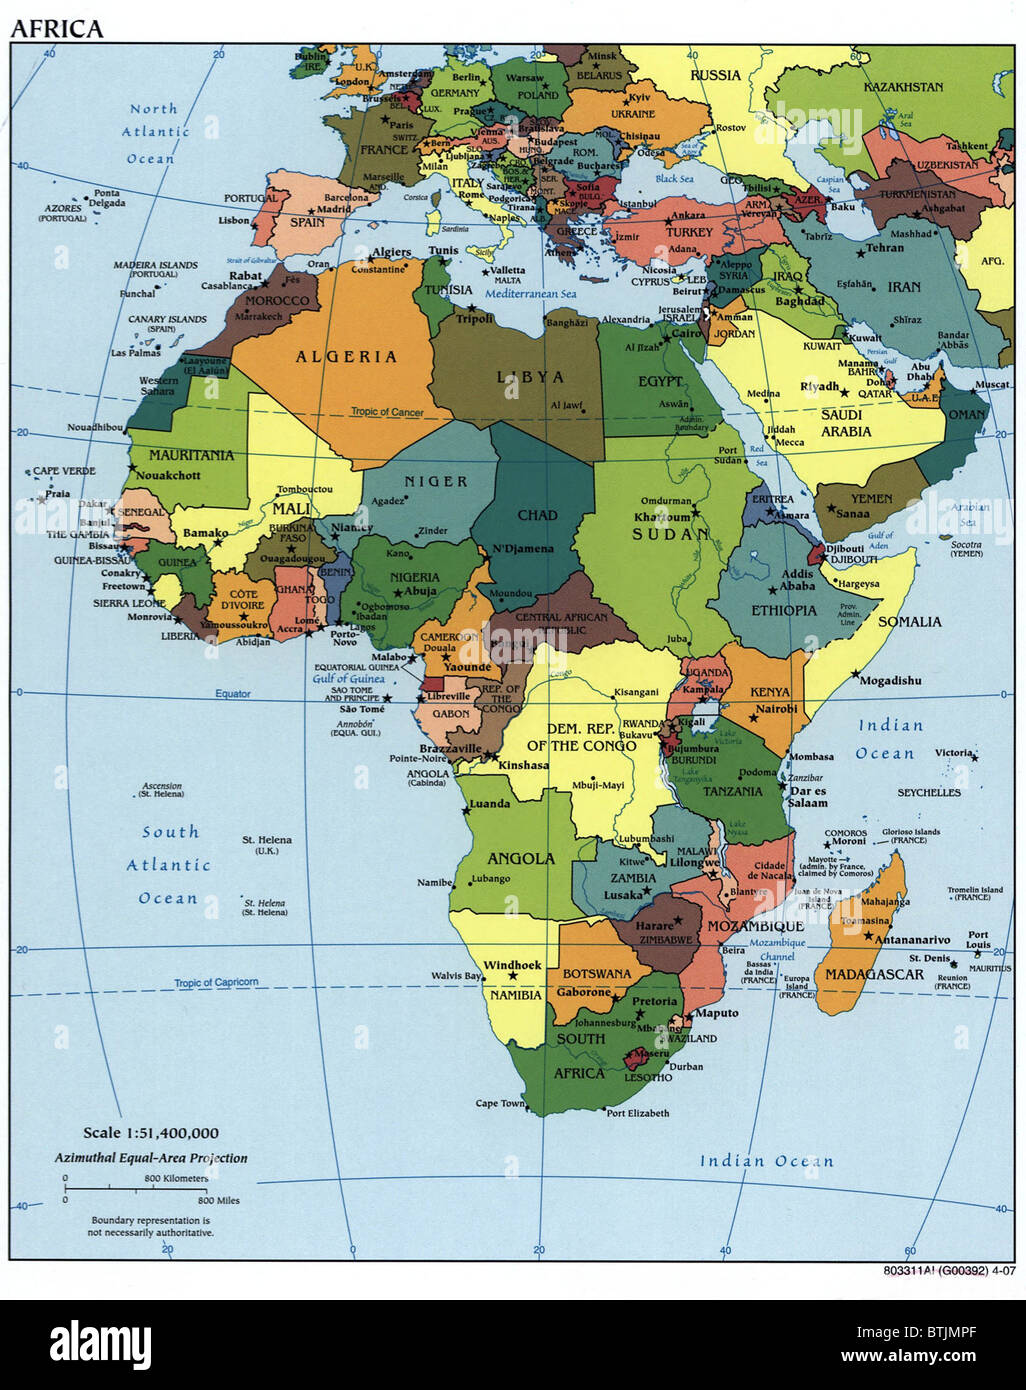 Map of Africa showing national boundaries, which echo early 20th century colonial borders. 2007 - Stock Image